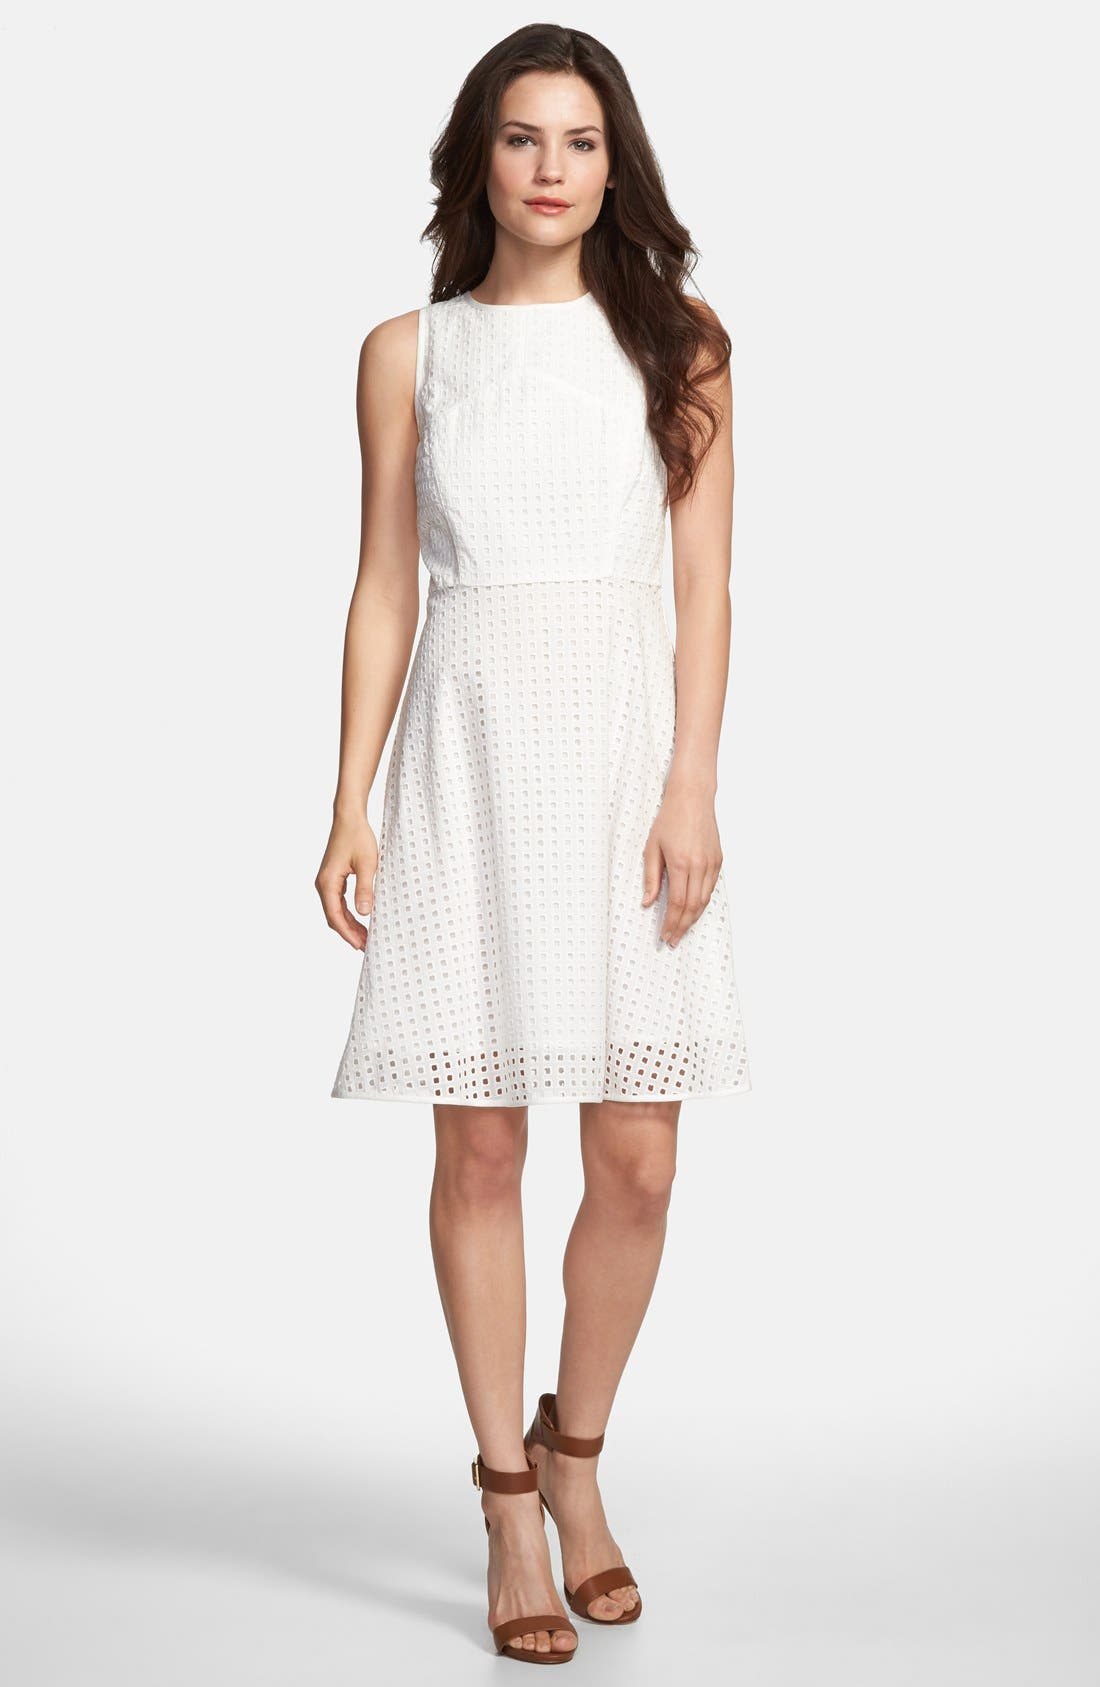 Main Image - Vince Camuto Square Eyelet Cotton Fit & Flare Dress